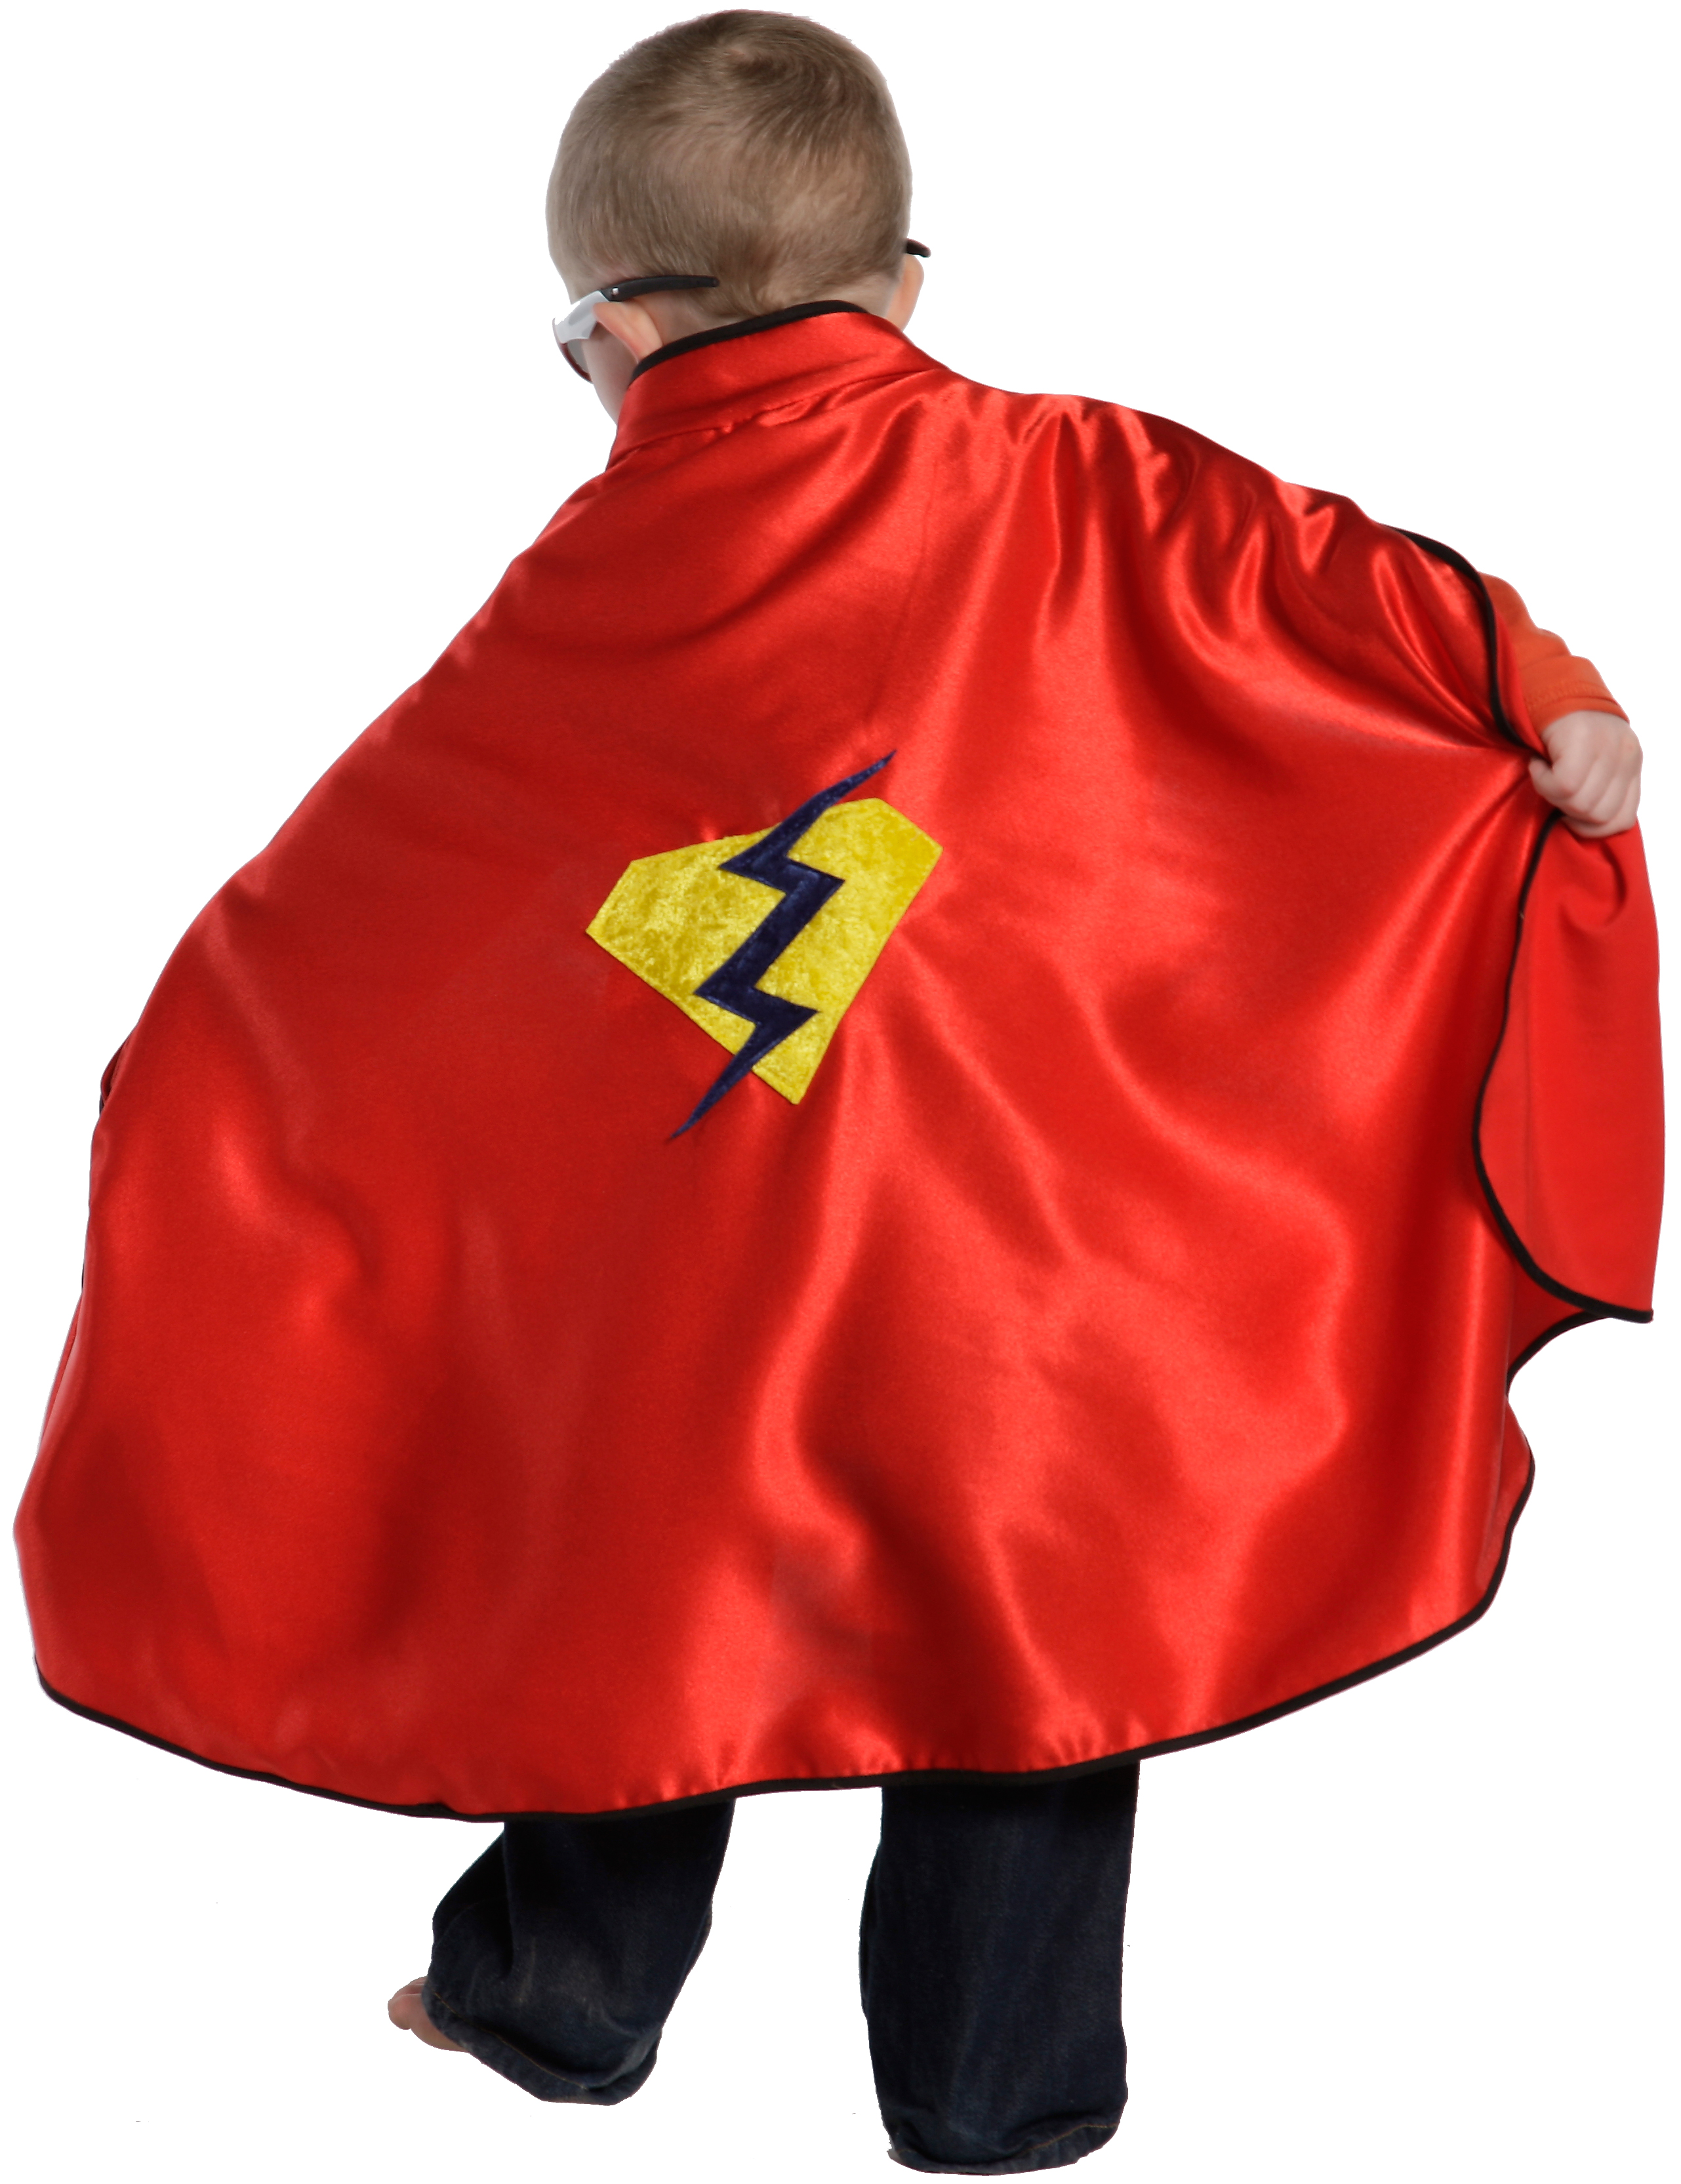 Http Www Tutoringtoy Com Buy 30405102 Red Adventure Cape Size Small